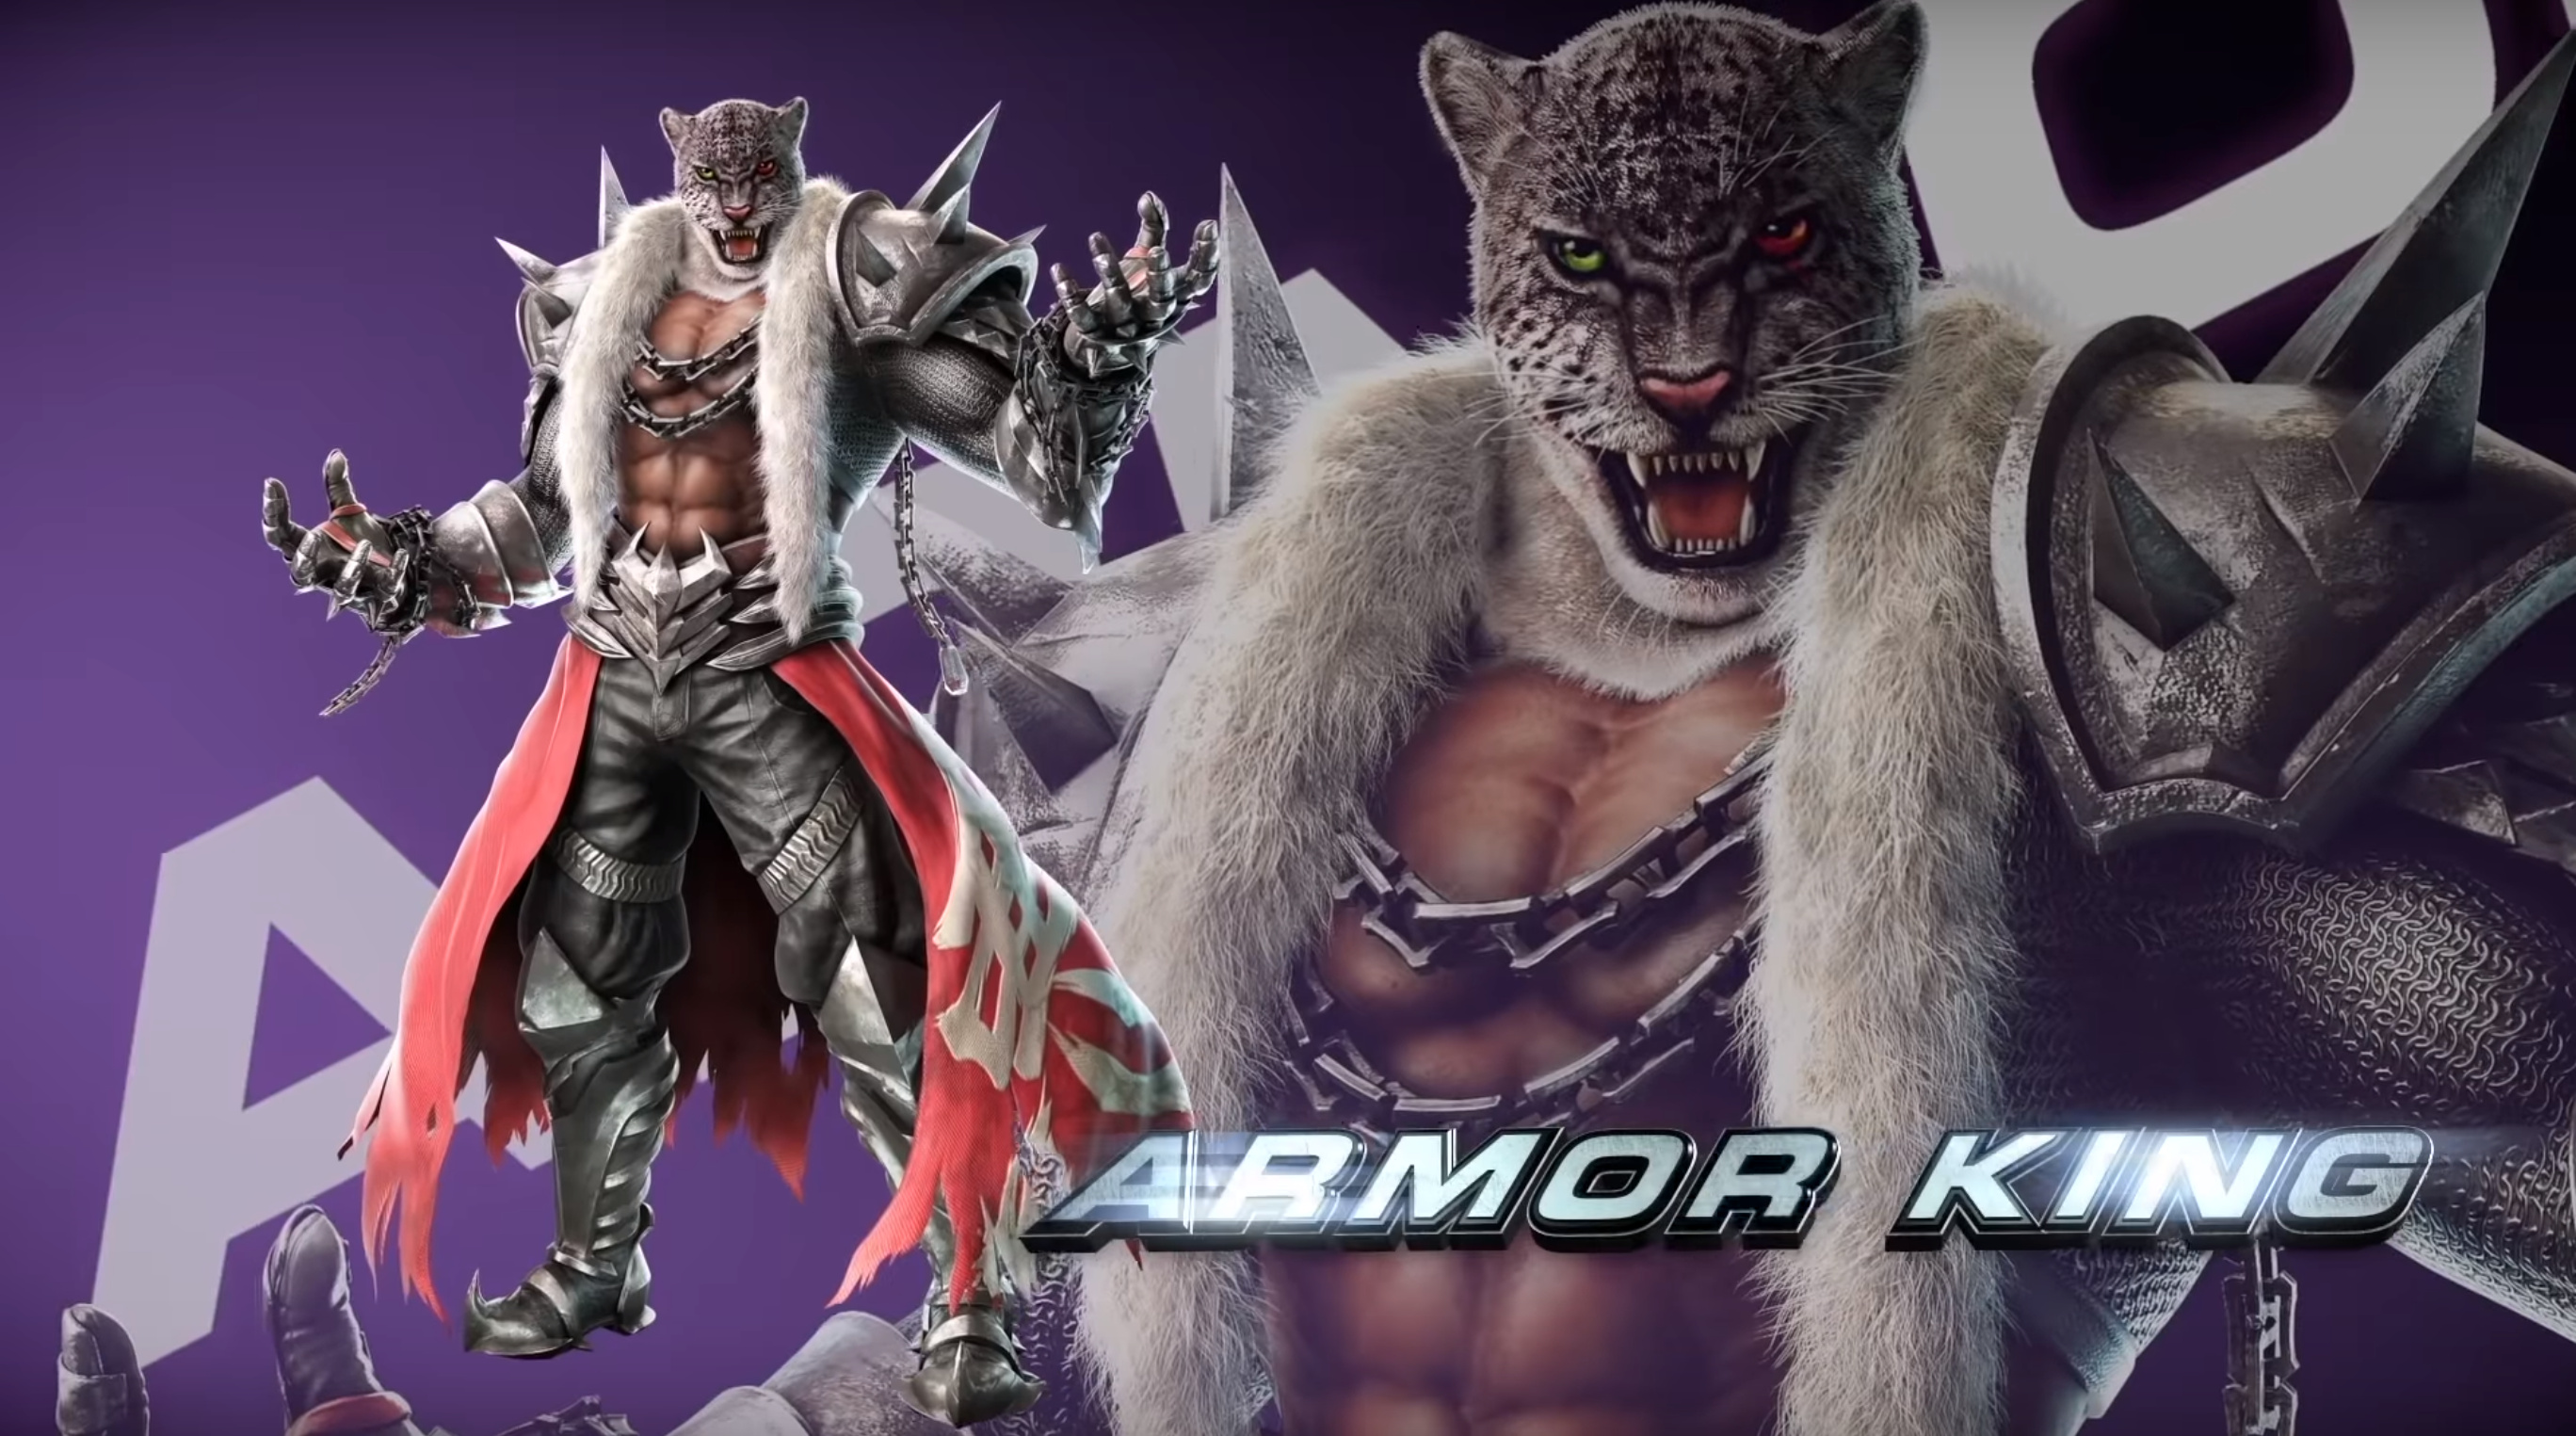 Tekken 7 Patch 2 10 Out On Ps4 Armor King And Marduk Available To